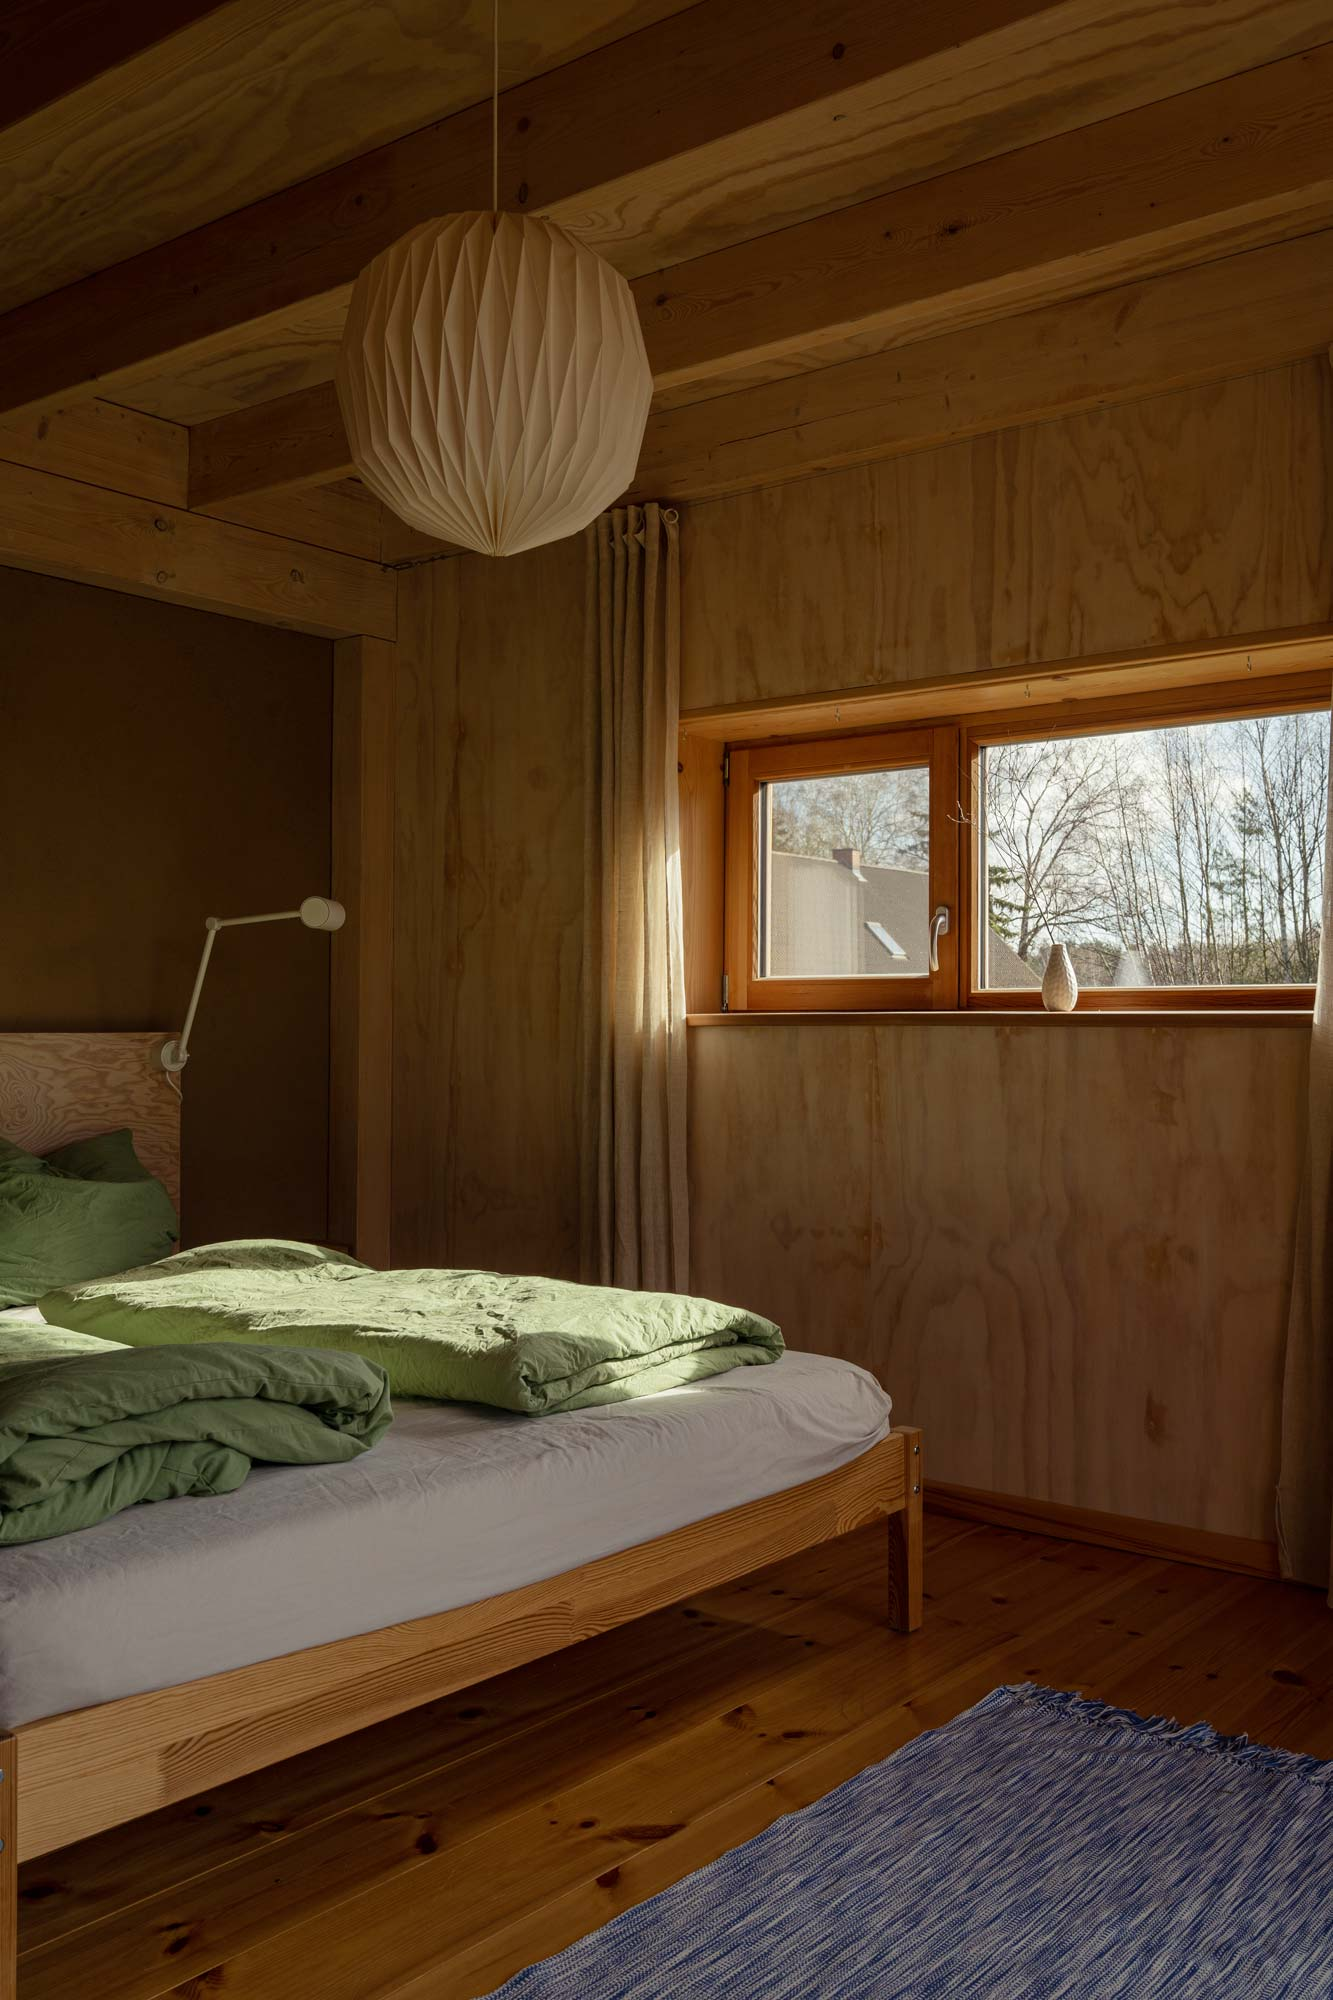 Interior photography of eco friendly wooden cabin in German countryside